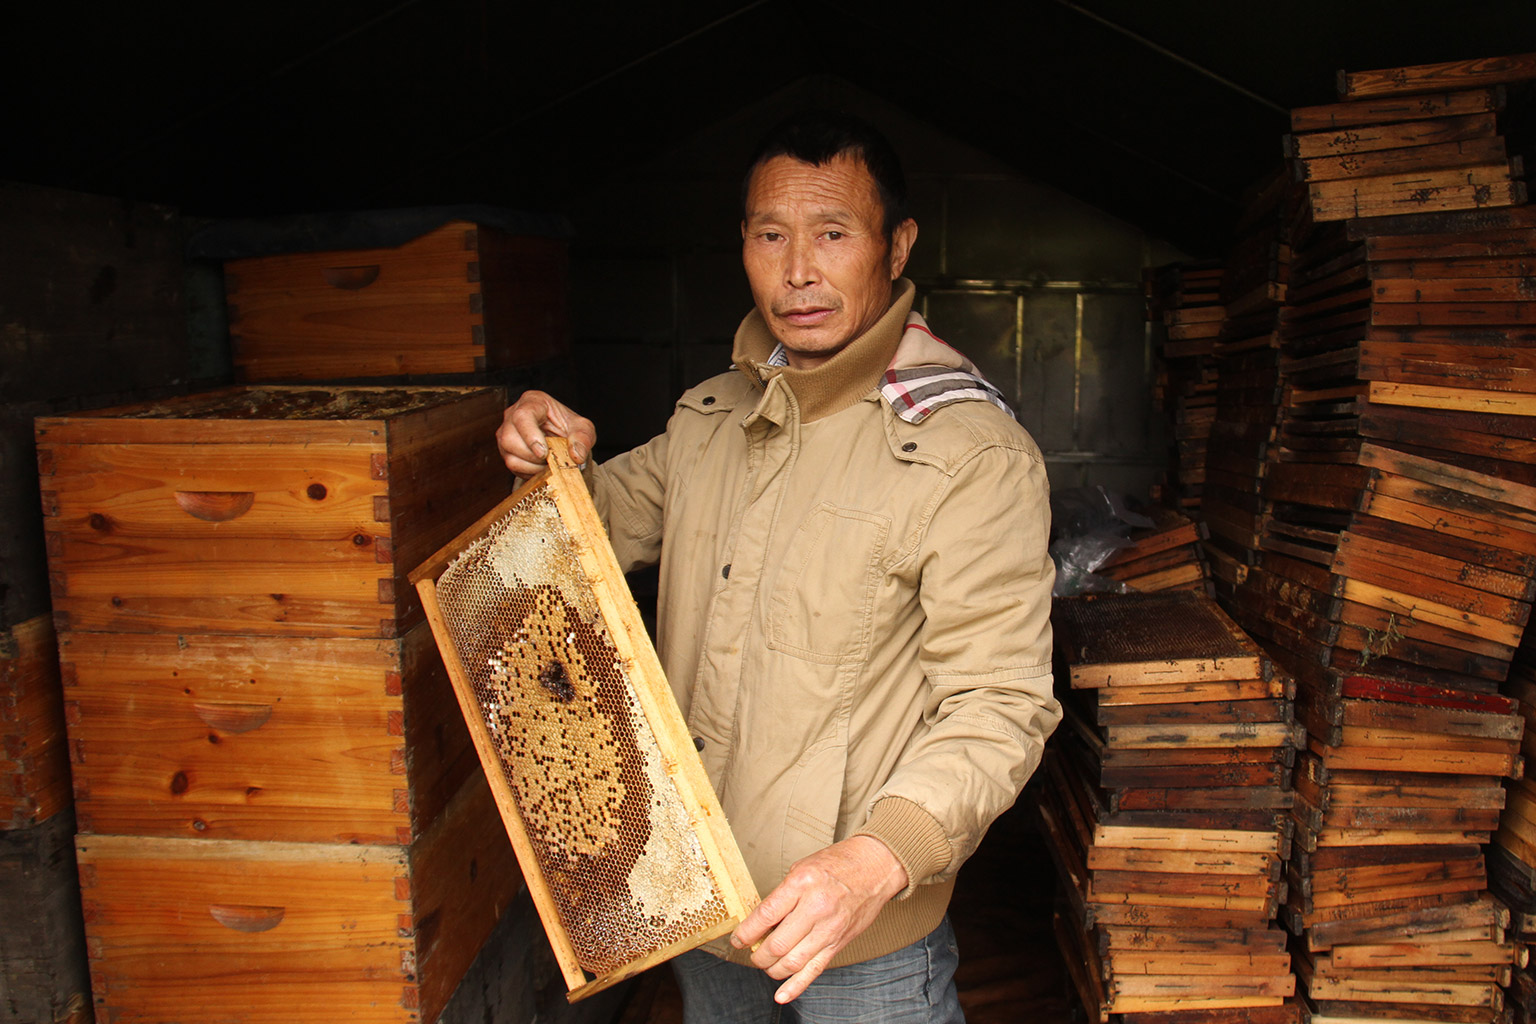 Beekeeper Xu in Chengdu who lost his hives in the pandemic. Xu has since received support from the China Green Development Society Hive Fund. Image credit: CBCGDF